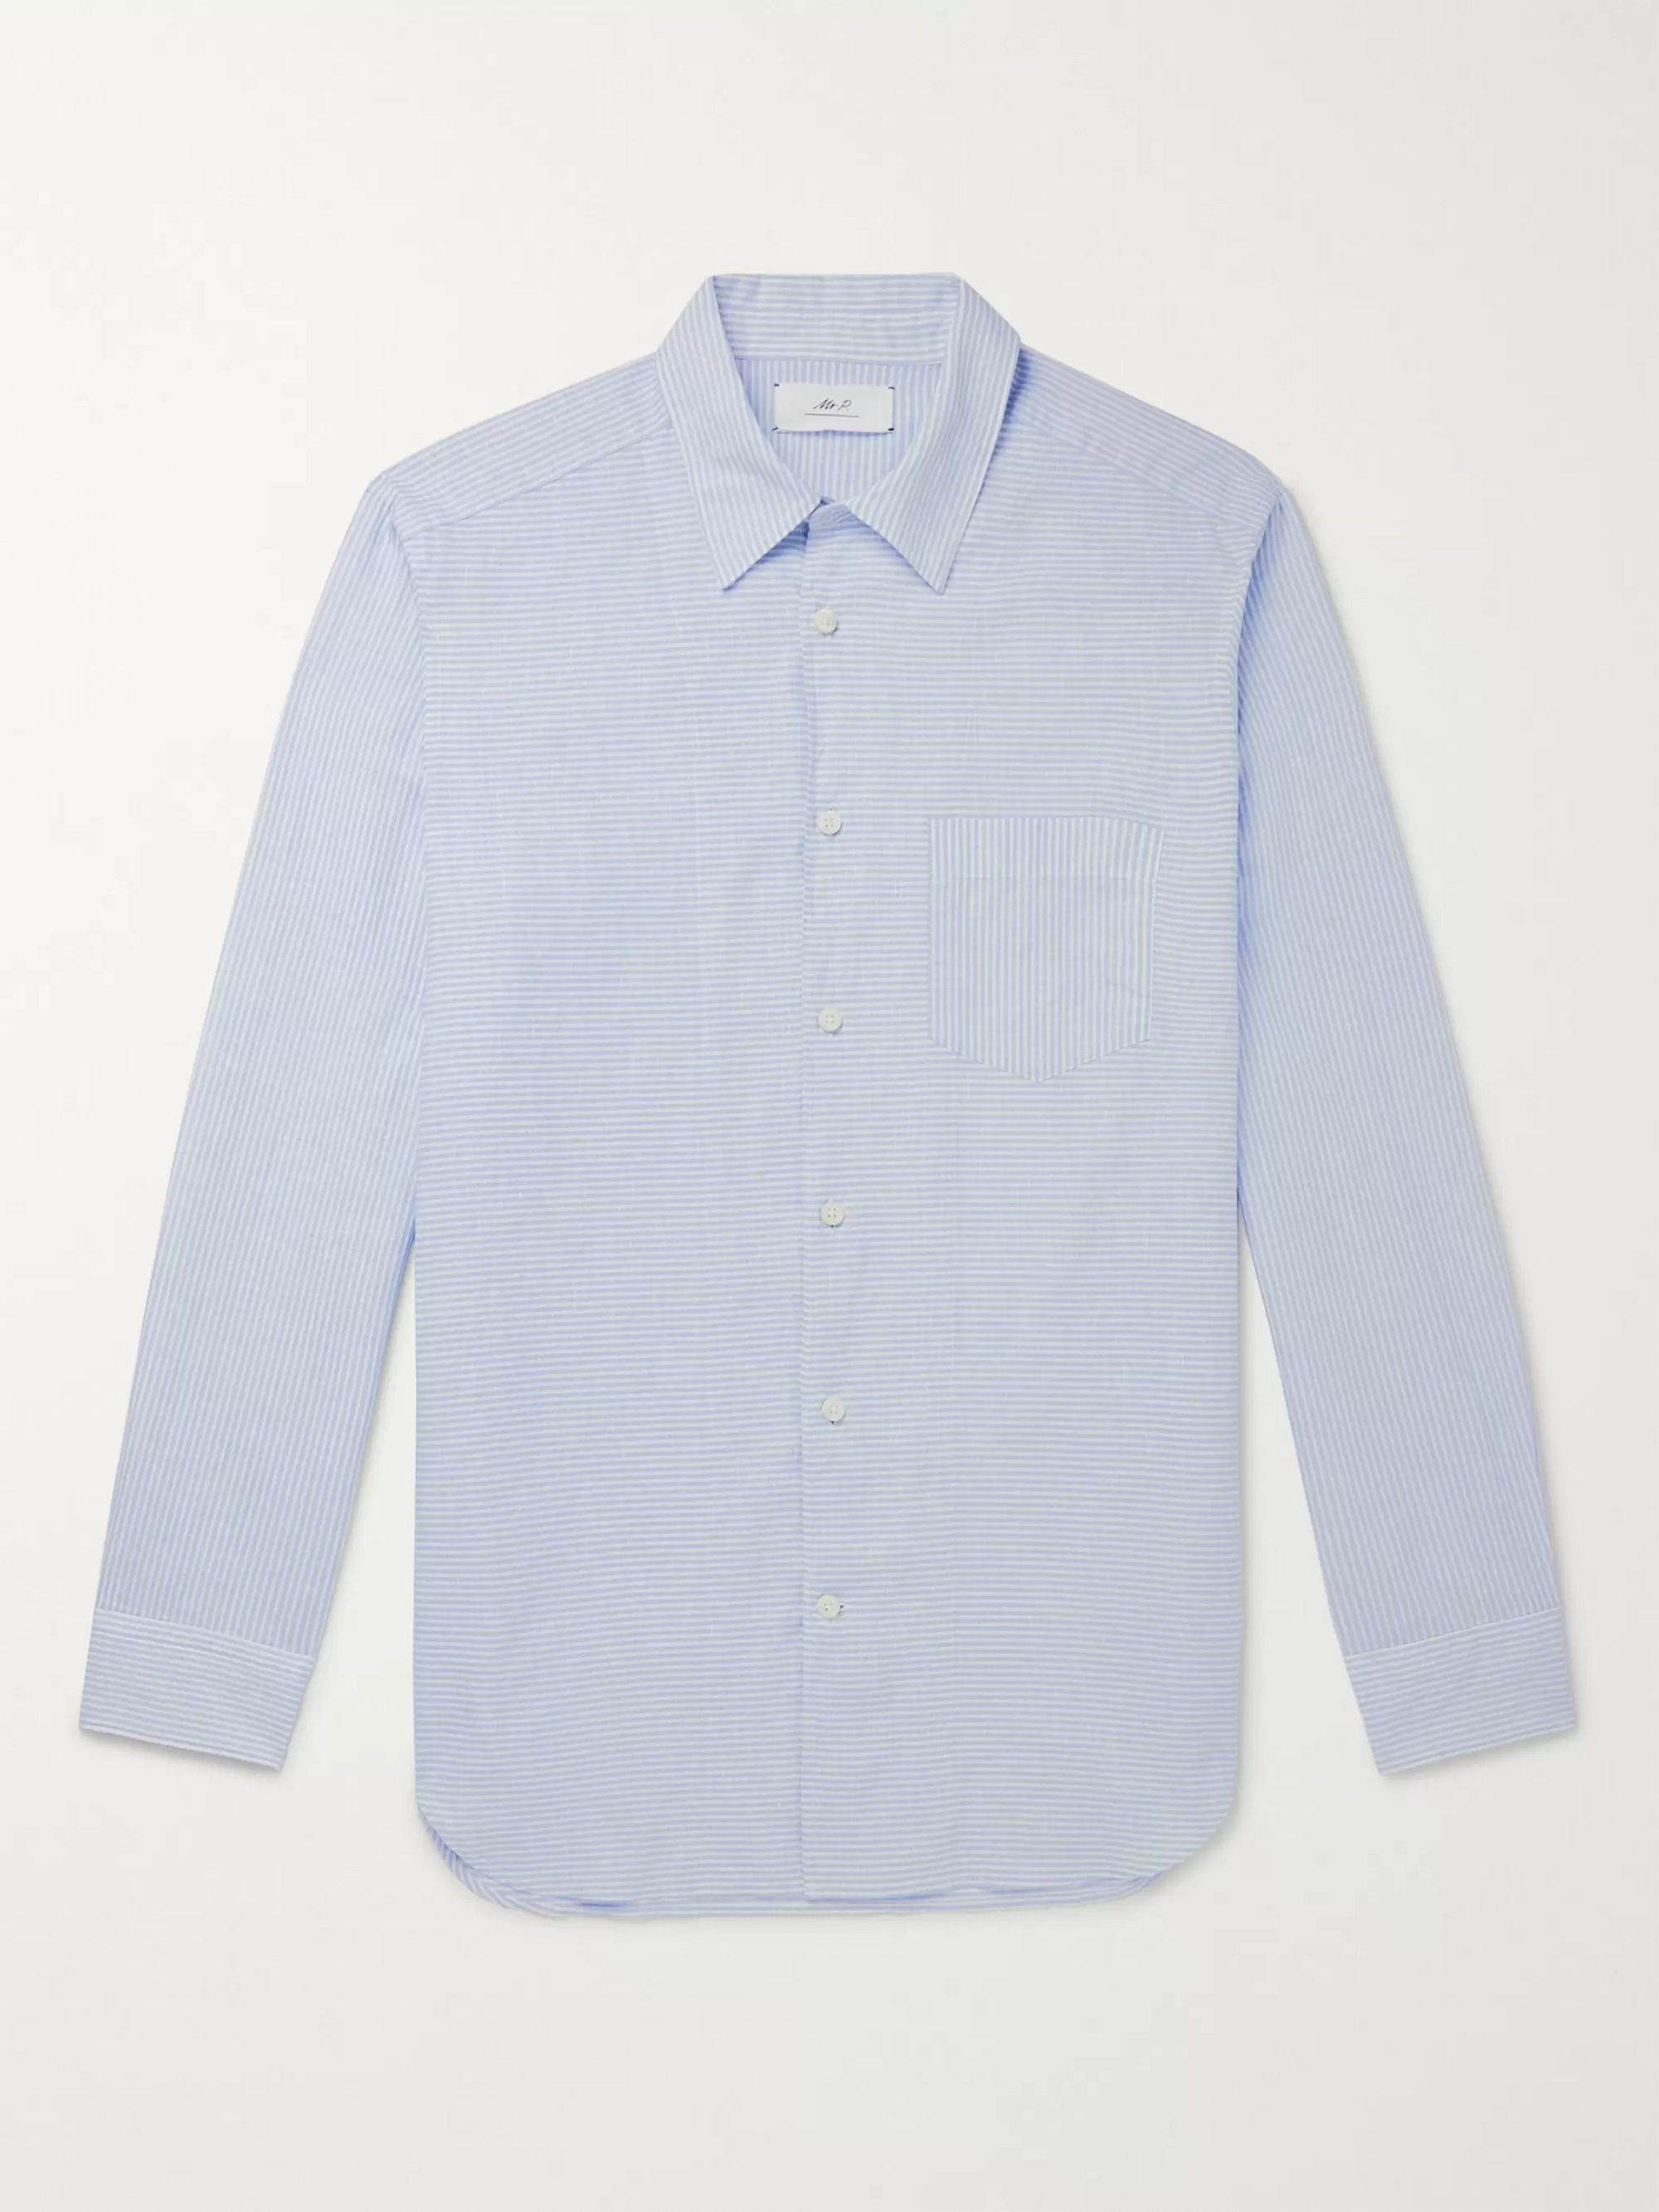 Mr P. Striped Linen and Cotton-Blend Shirt